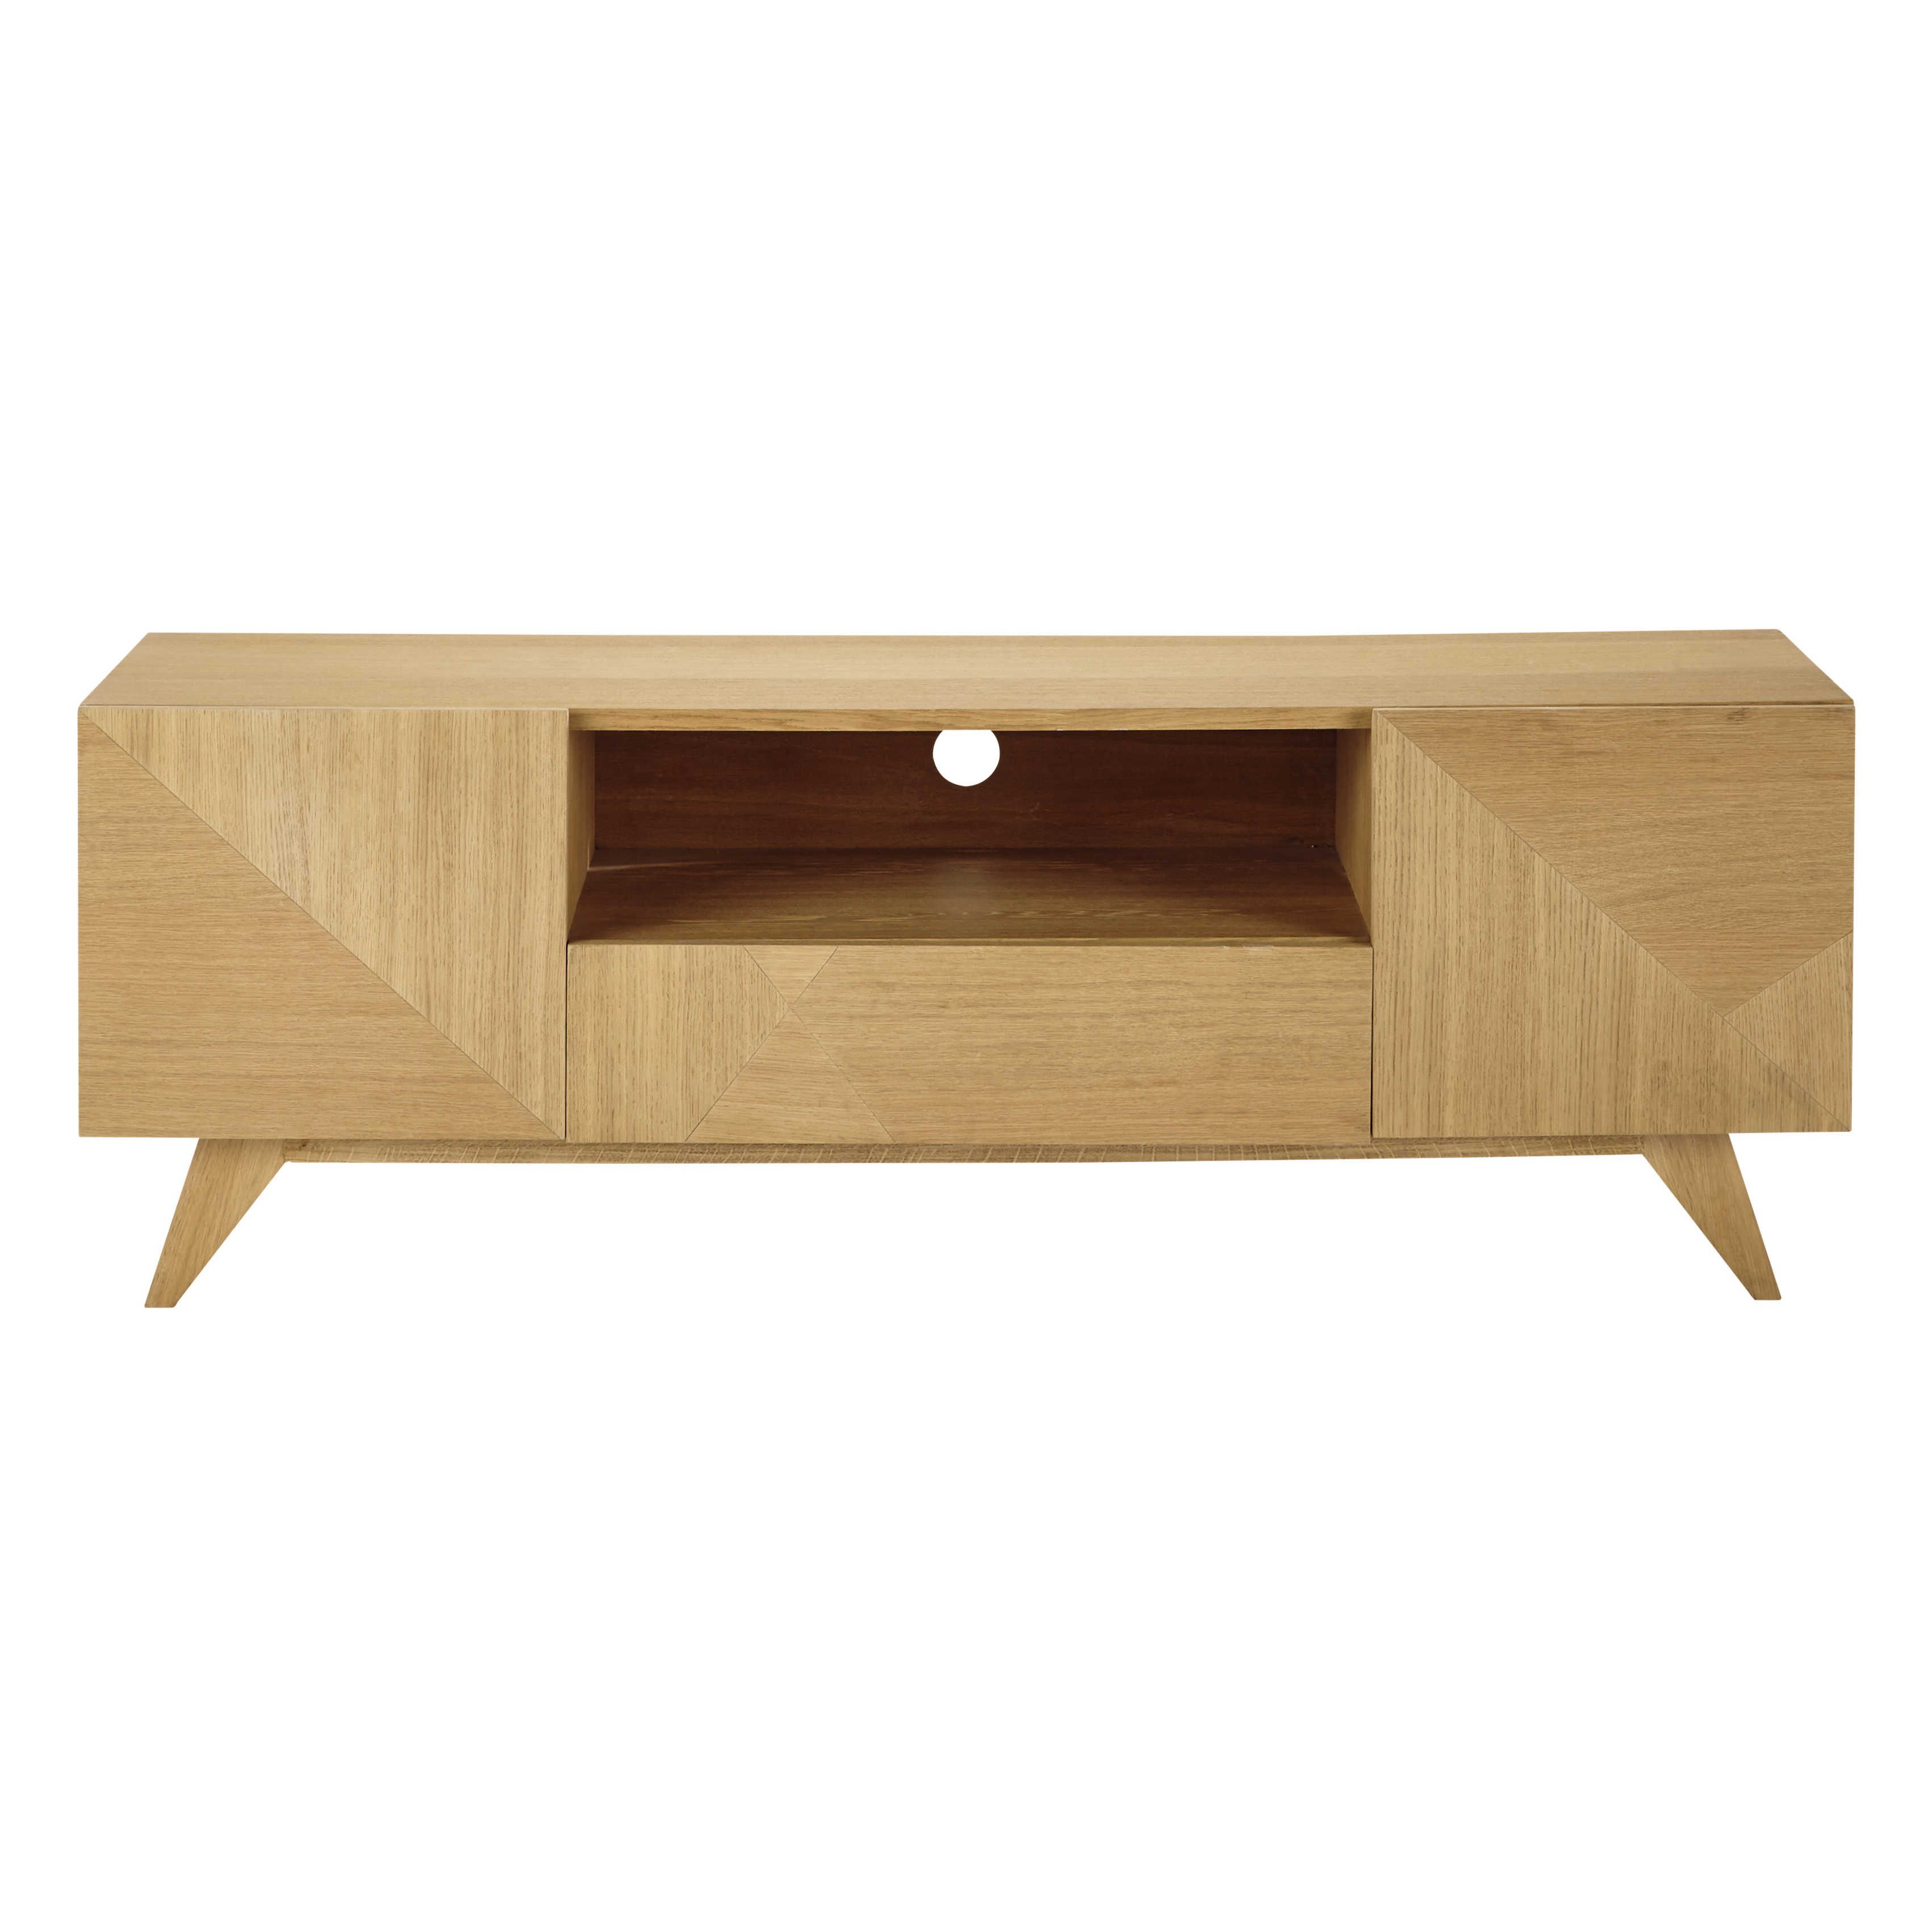 Meuble Tv Origami - Mueble De Tv Vintage 2 Puertas 1 Cajone Tv Unit Living Room [mjhdah]https://www.sharkdesign.fr/wp-content/uploads/2017/12/meuble-tv-d-angle-fly-12-meuble-but-895×1024.jpg